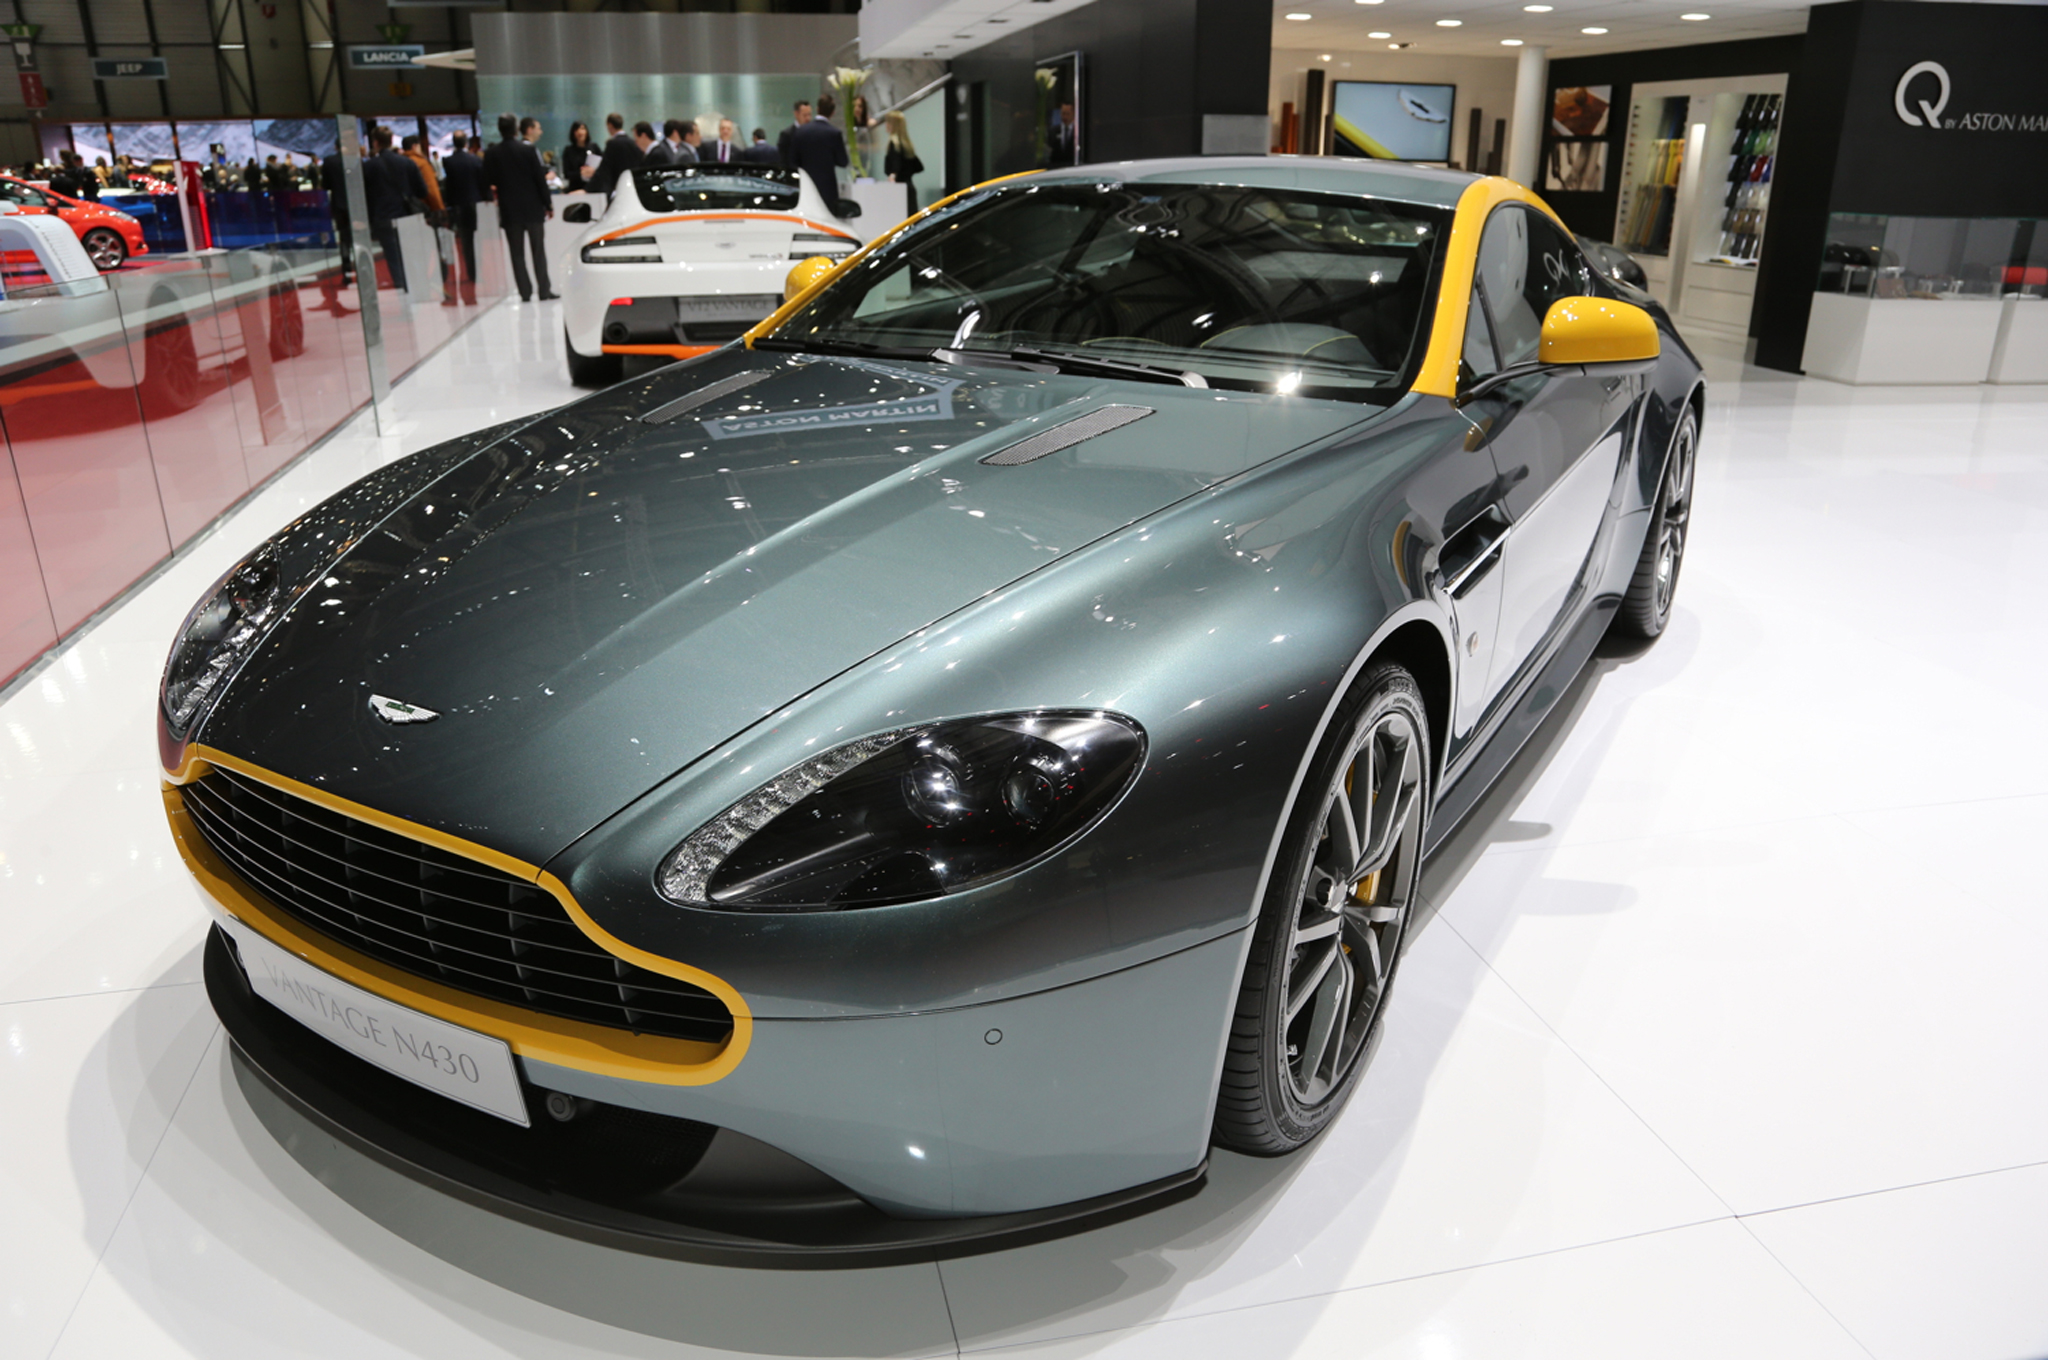 Aston Martin V8 Vantage N430, DB9 Carbon Edition Going to Geneva